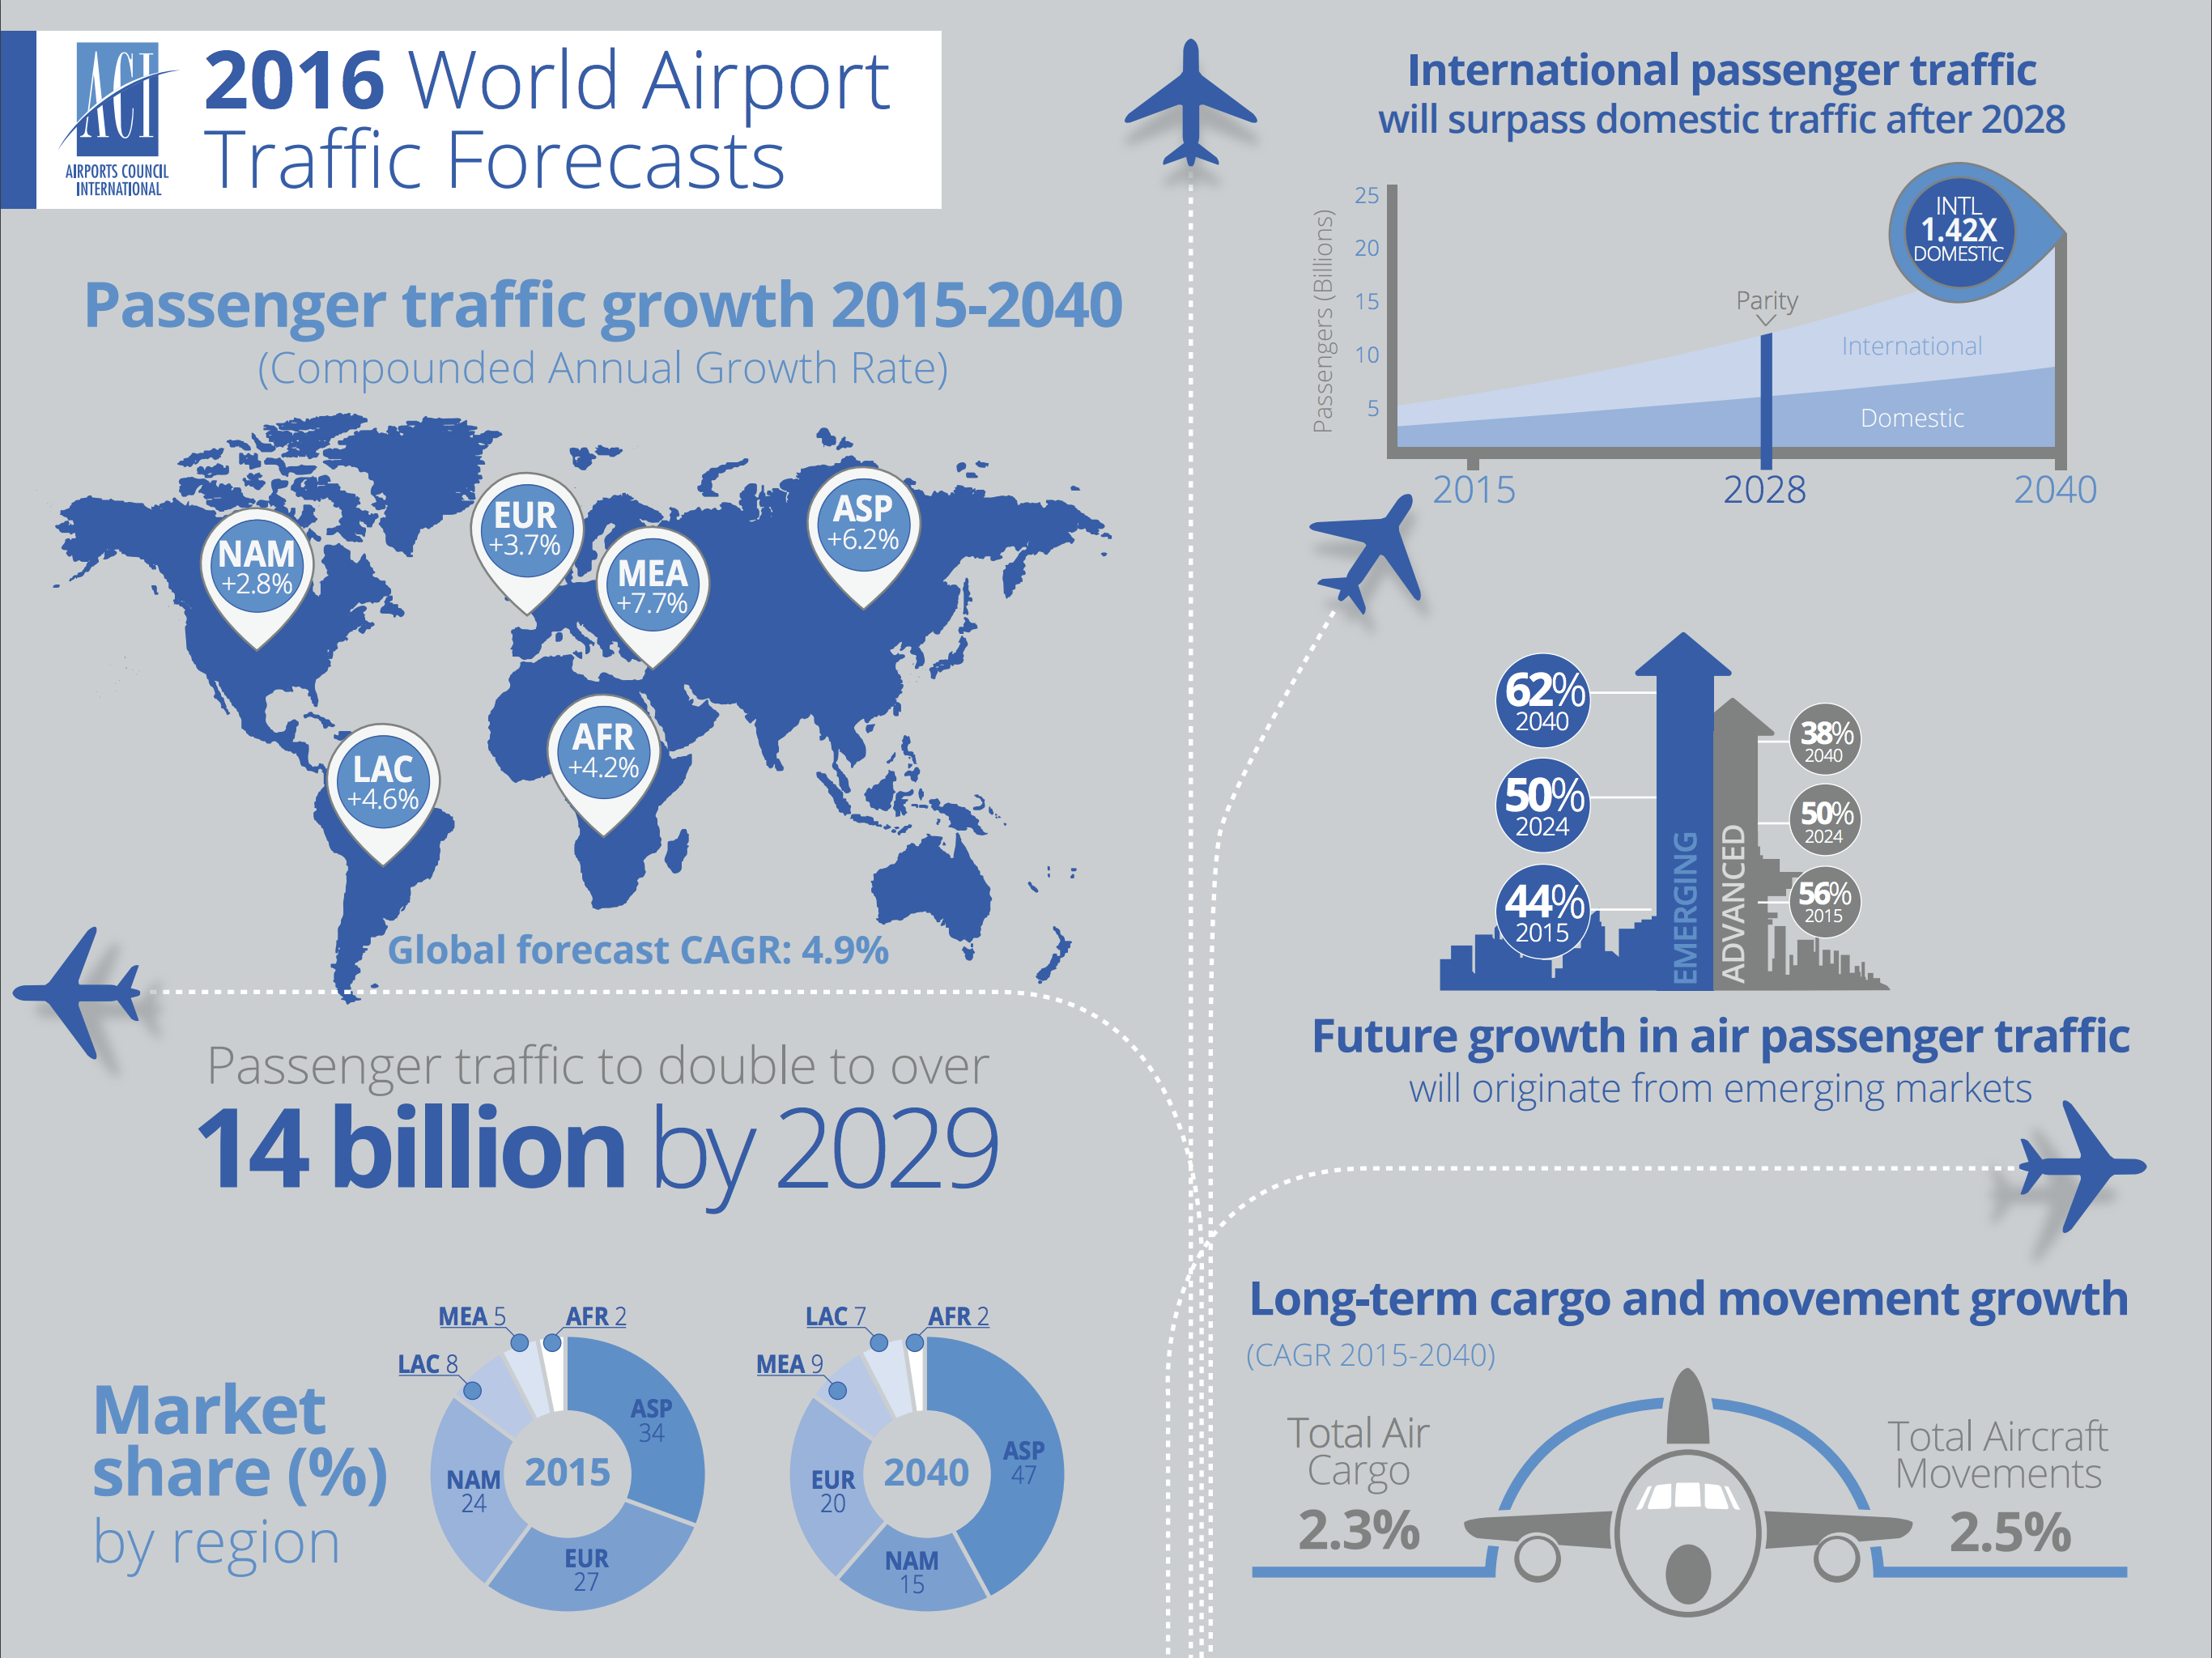 The number of passengers passing through airports is set to double by 2029